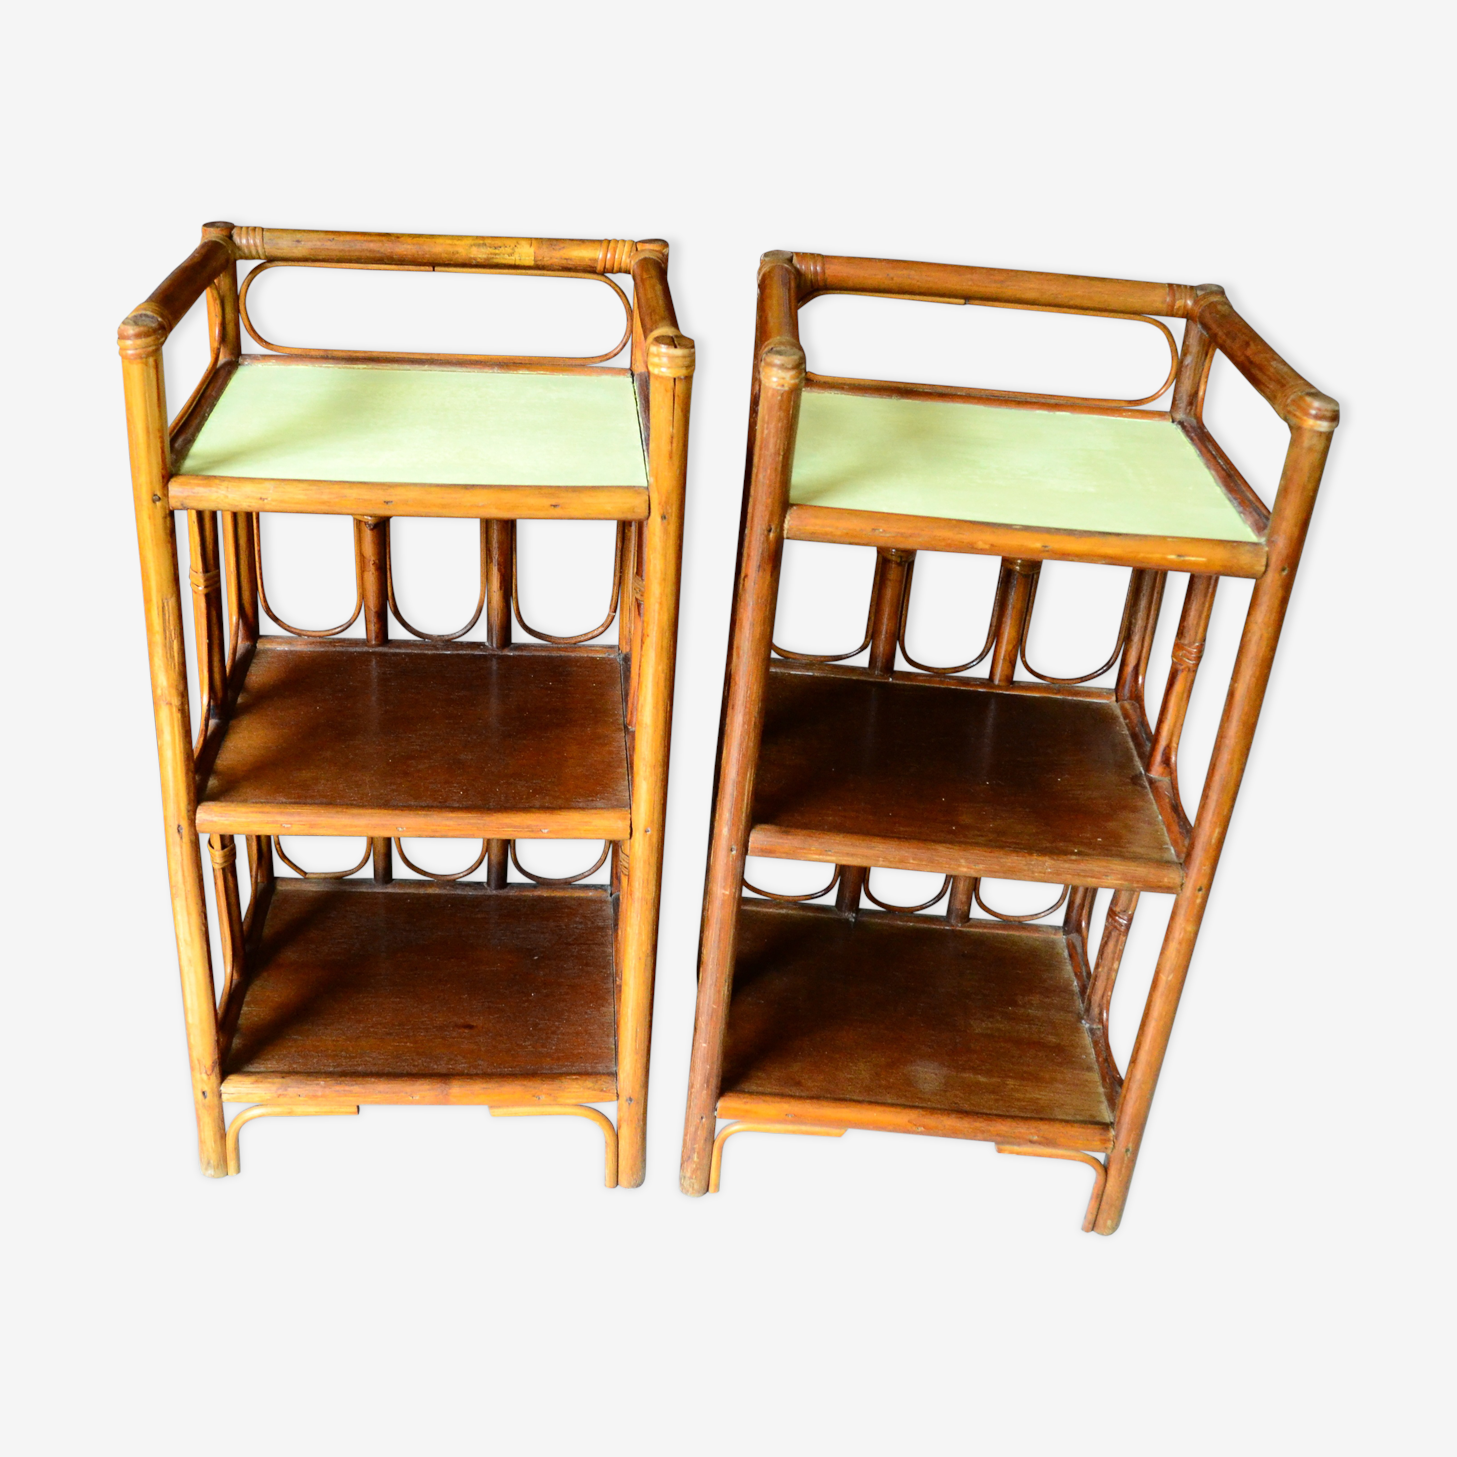 2 bamboo rattan bedside tables years 60 70